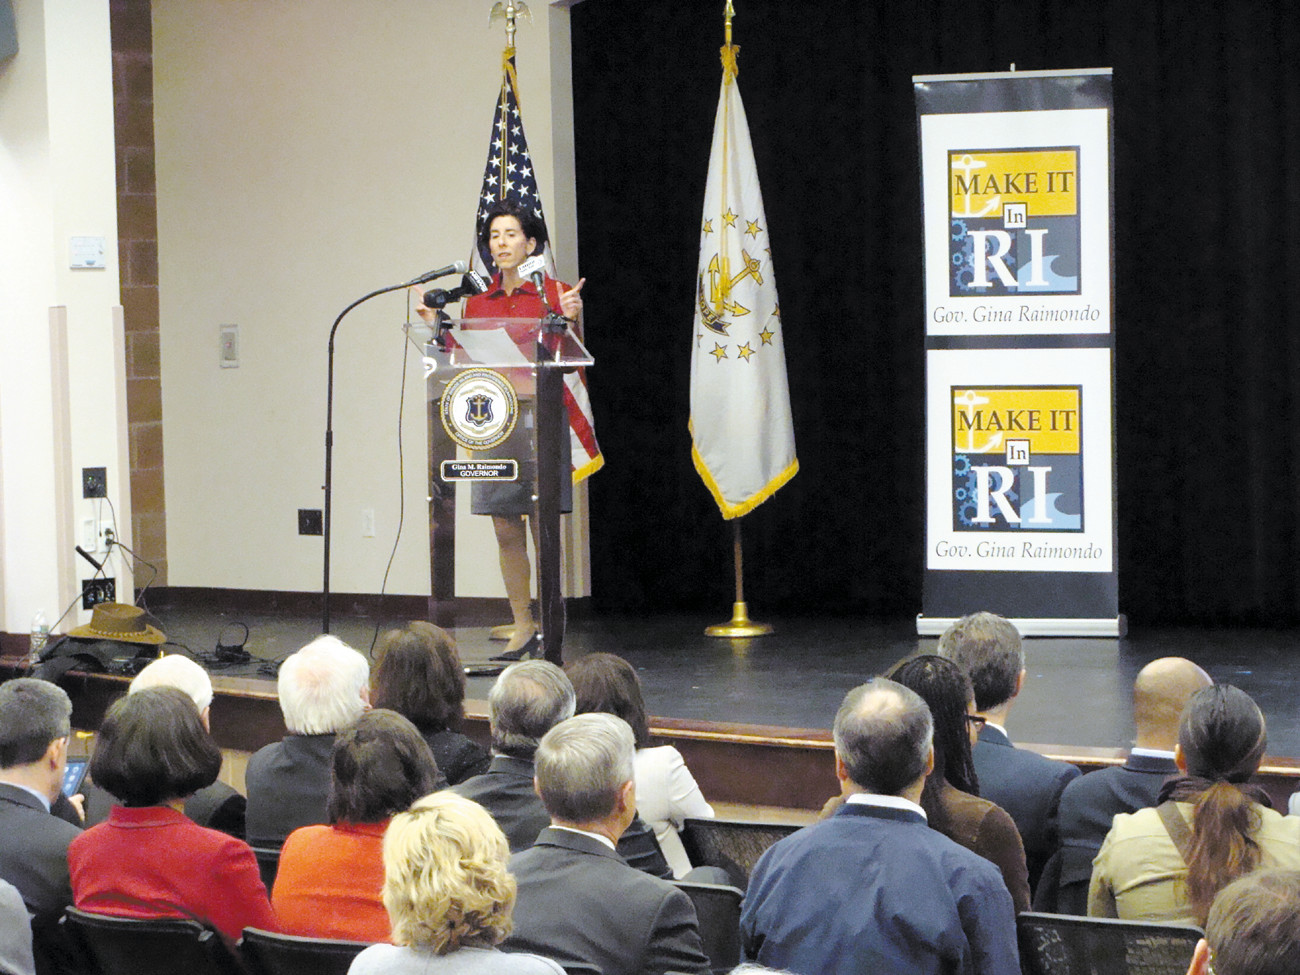 YEAR IN REVIEW: Governor Gina Raimondo invited more than 200 civic, business and education leaders to the URI Providence campus for the Make it in Rhode Island Summit. The gathering broke into working groups that discussed issues they saw facing Rhode Island and the possible positive solutions.